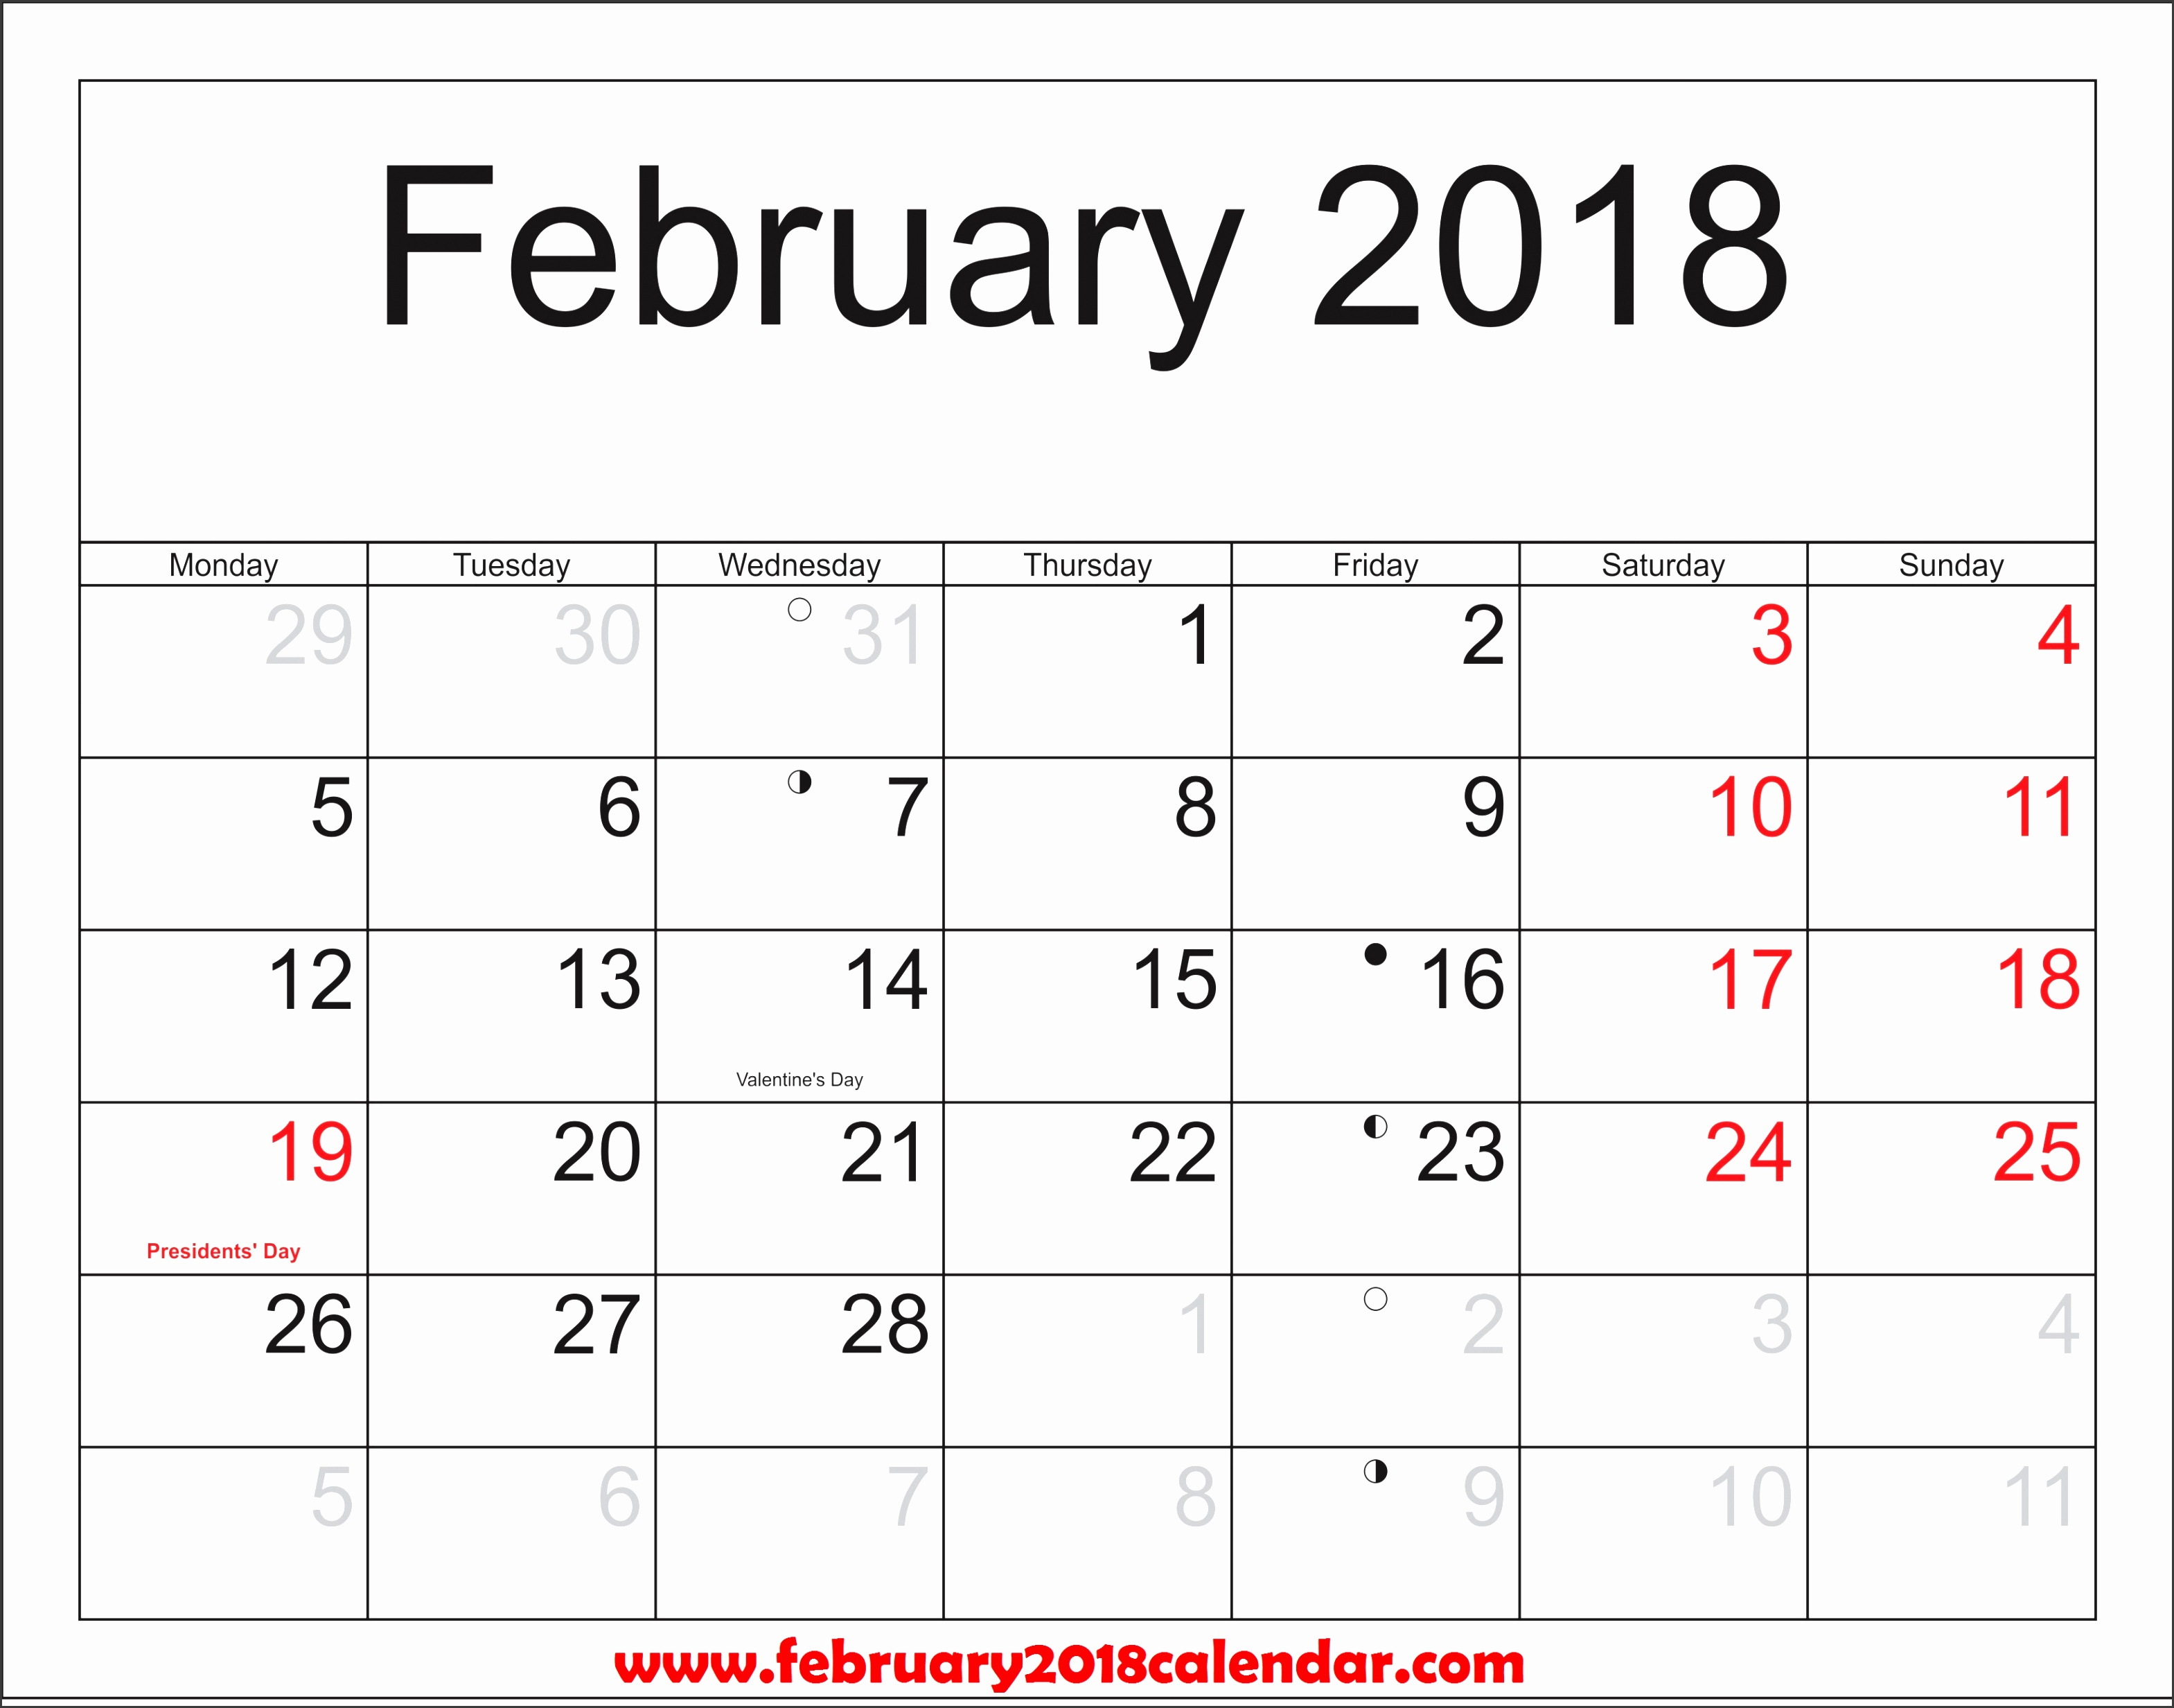 Now if we check up ing world famous event then here you will to know that the Super Bowl 2018 date is February 4 2018 That s right — next year s